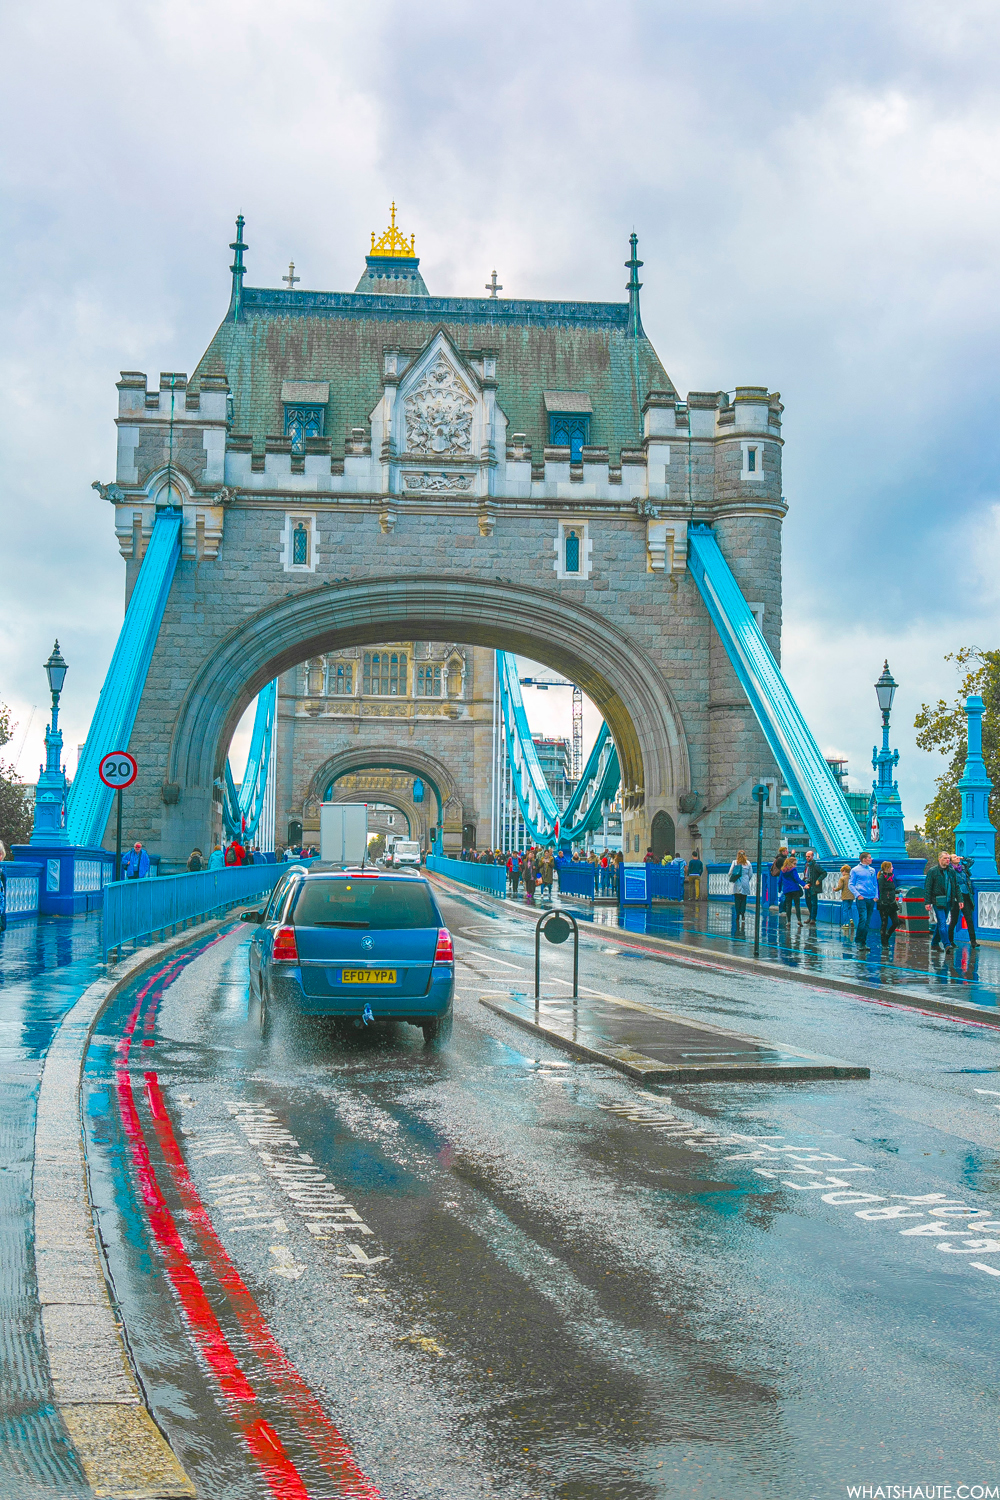 Tower Bridge - London, England, What's Haute in the World